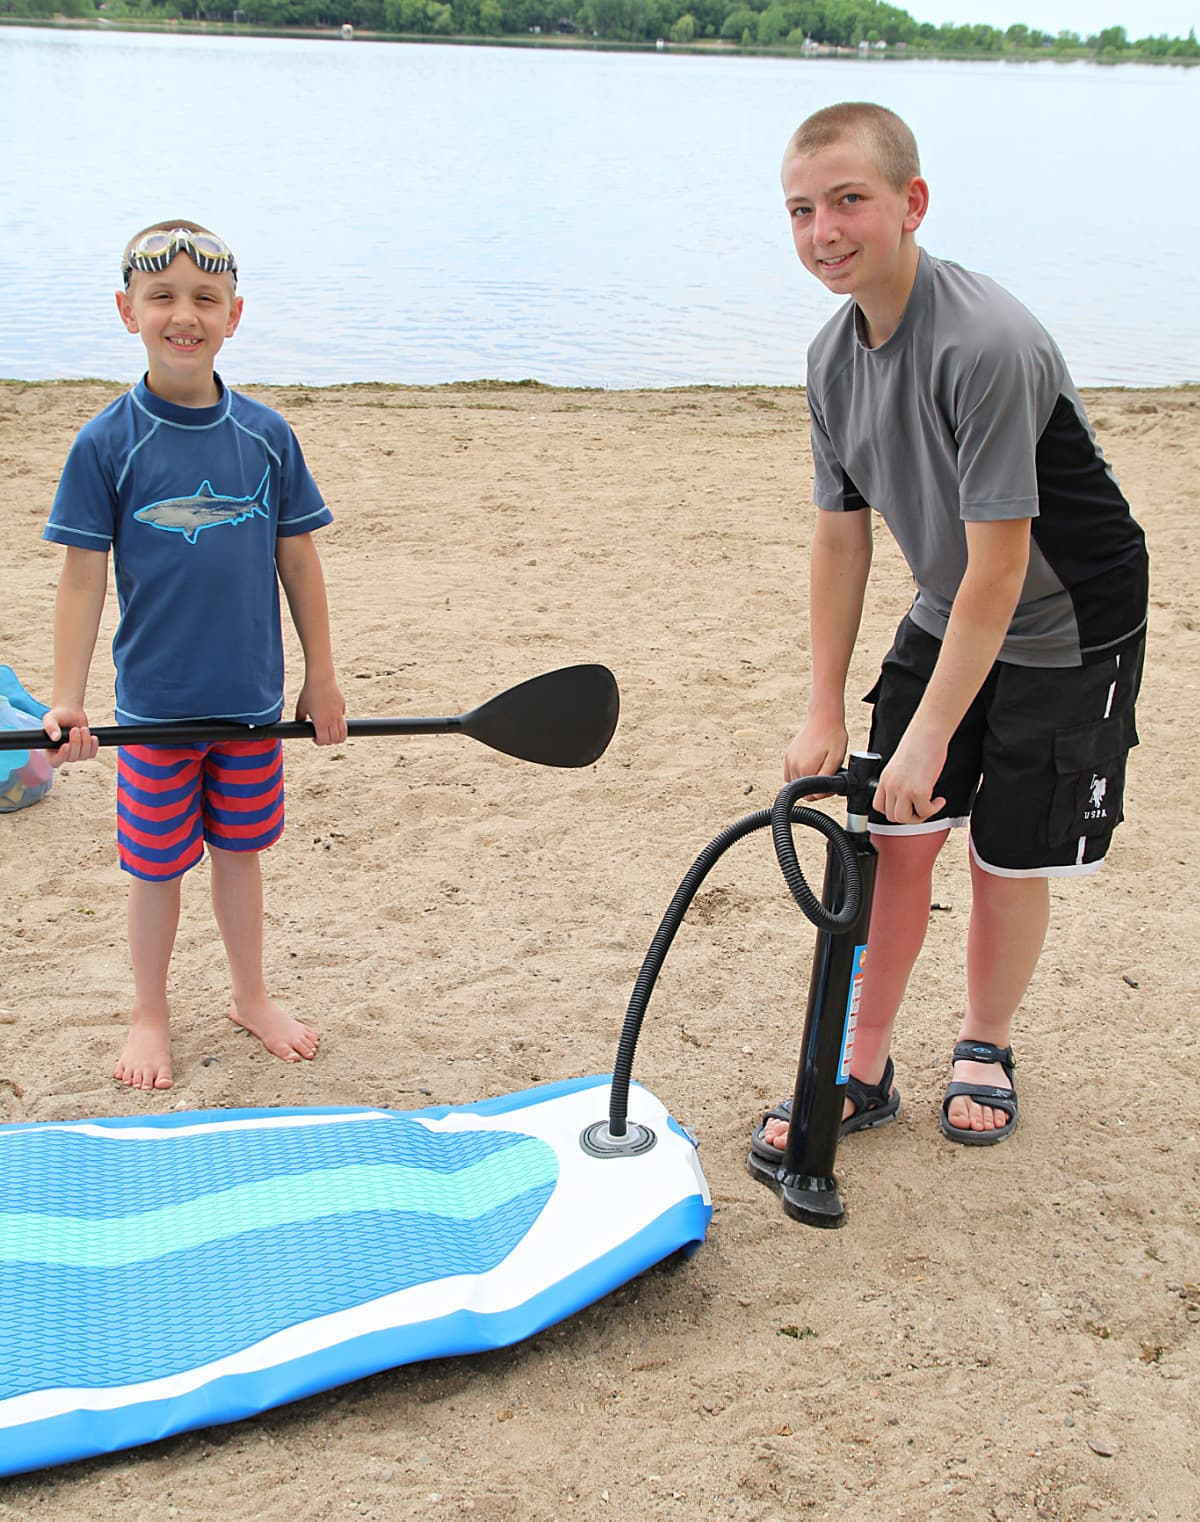 kids inflating a paddle board -  Soozier Inflatable Paddle Board Review + Discount